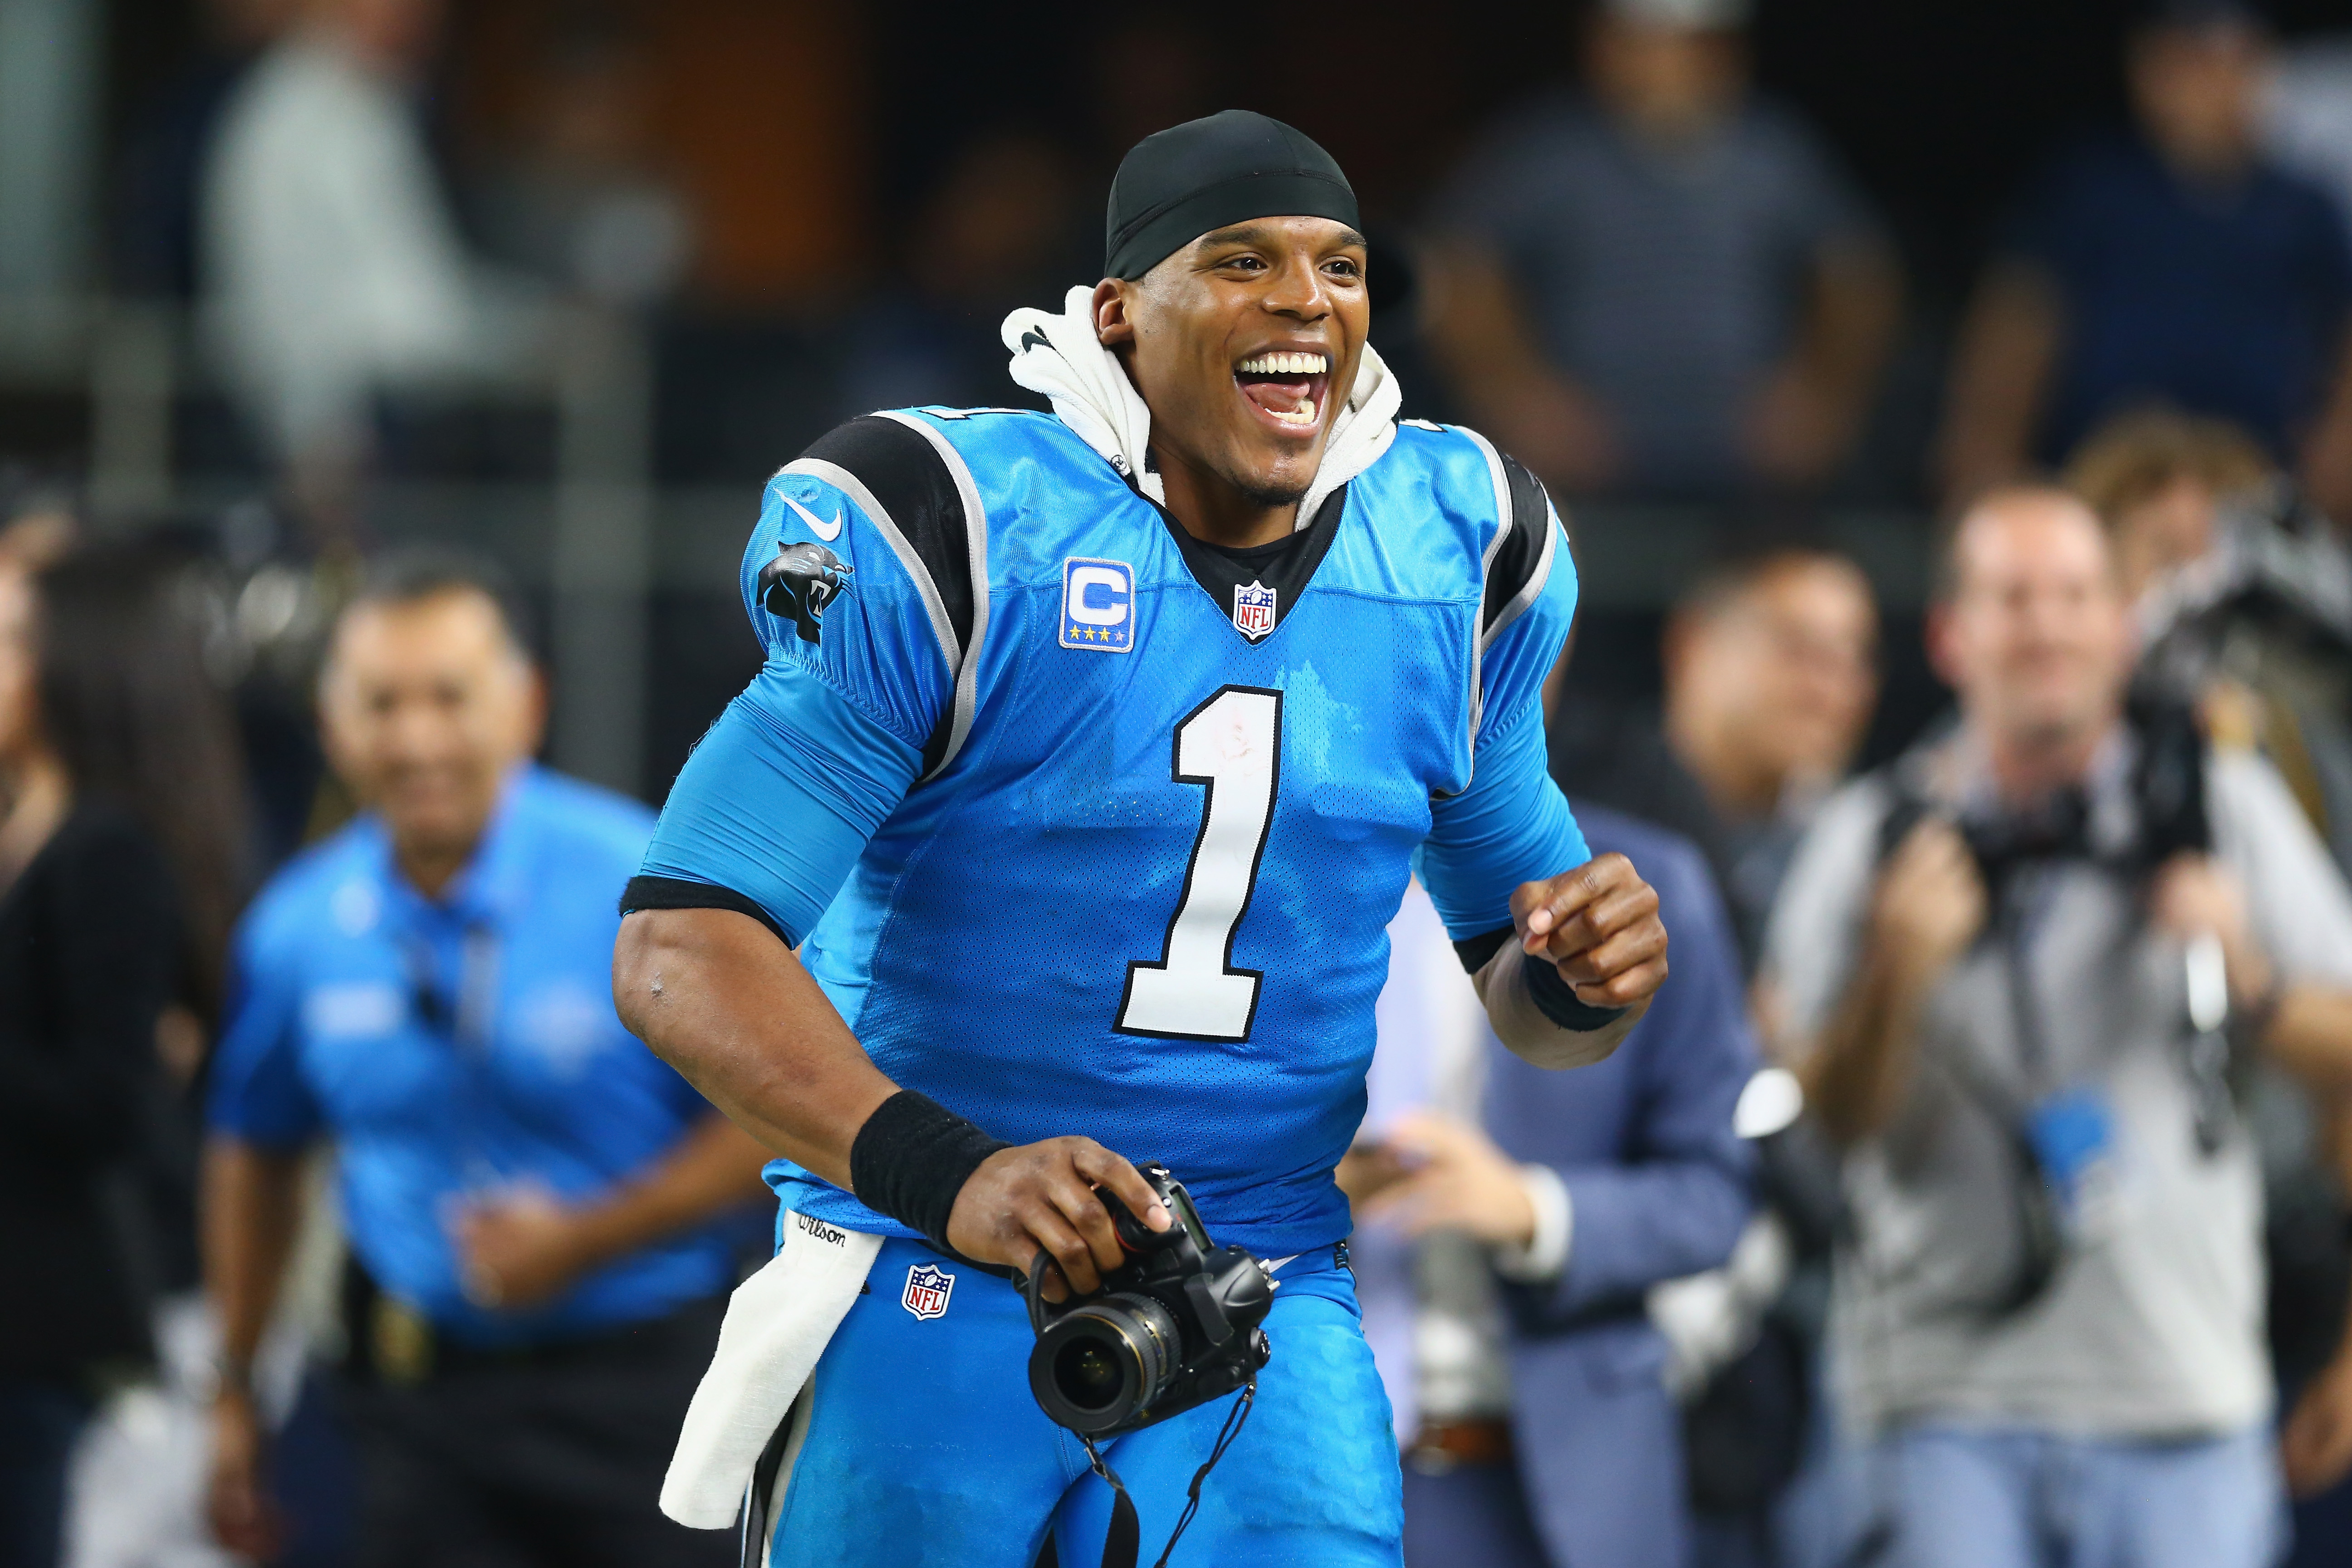 Cam Newton could make list of Heisman and Super Bowl winners